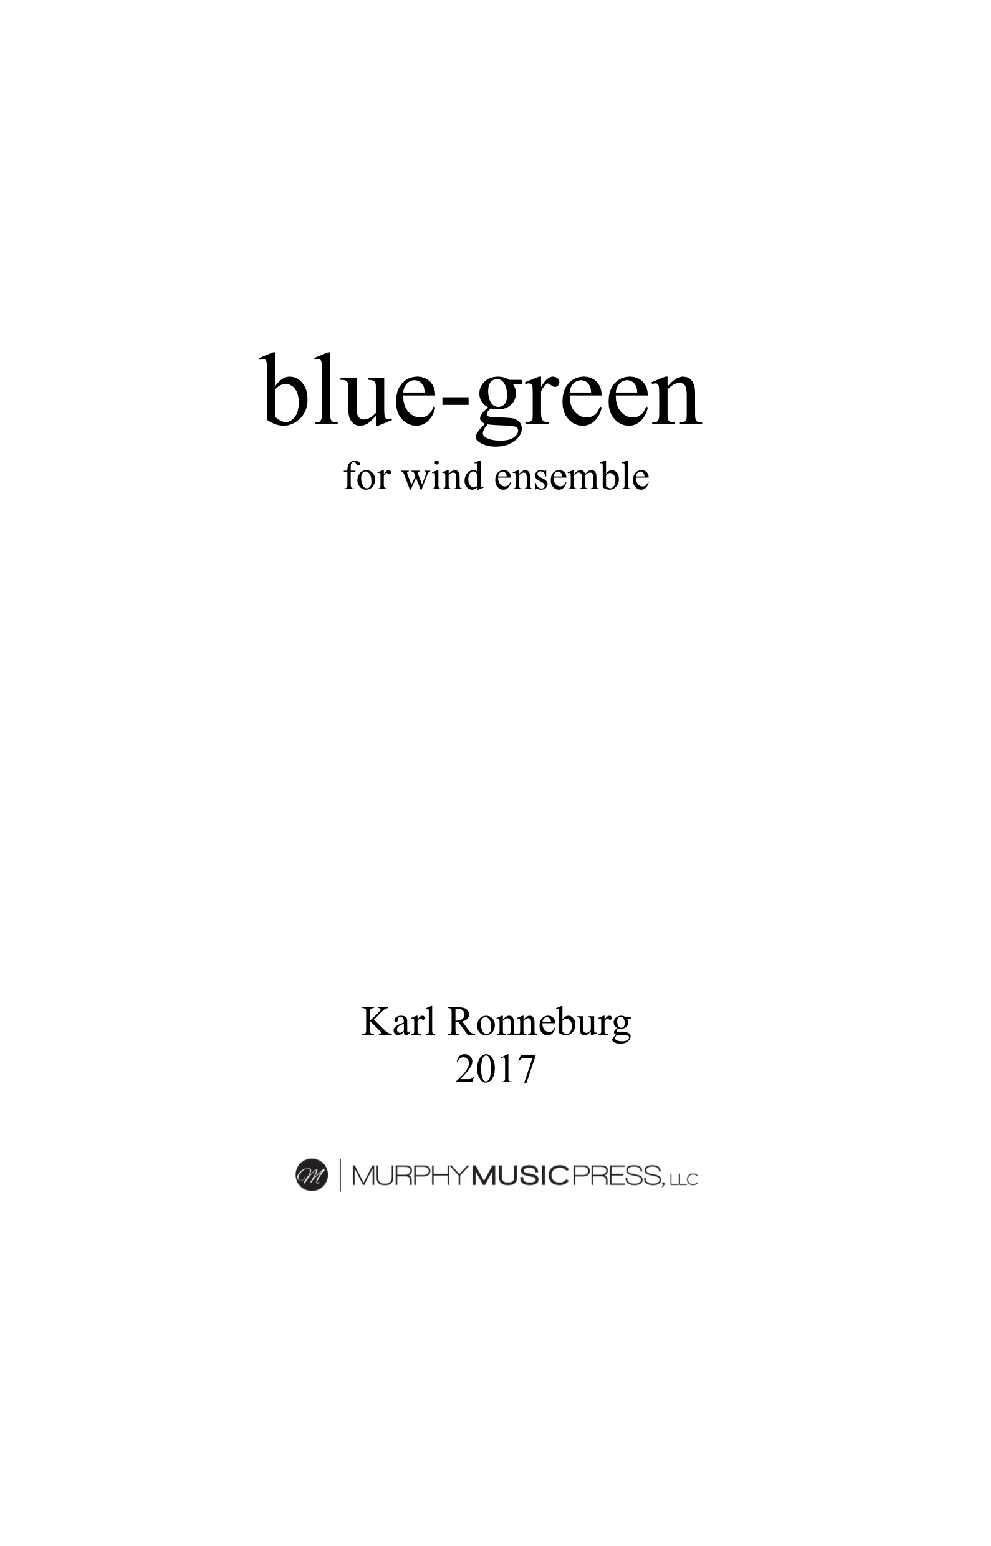 Blue-Green by Karl Ronneburg